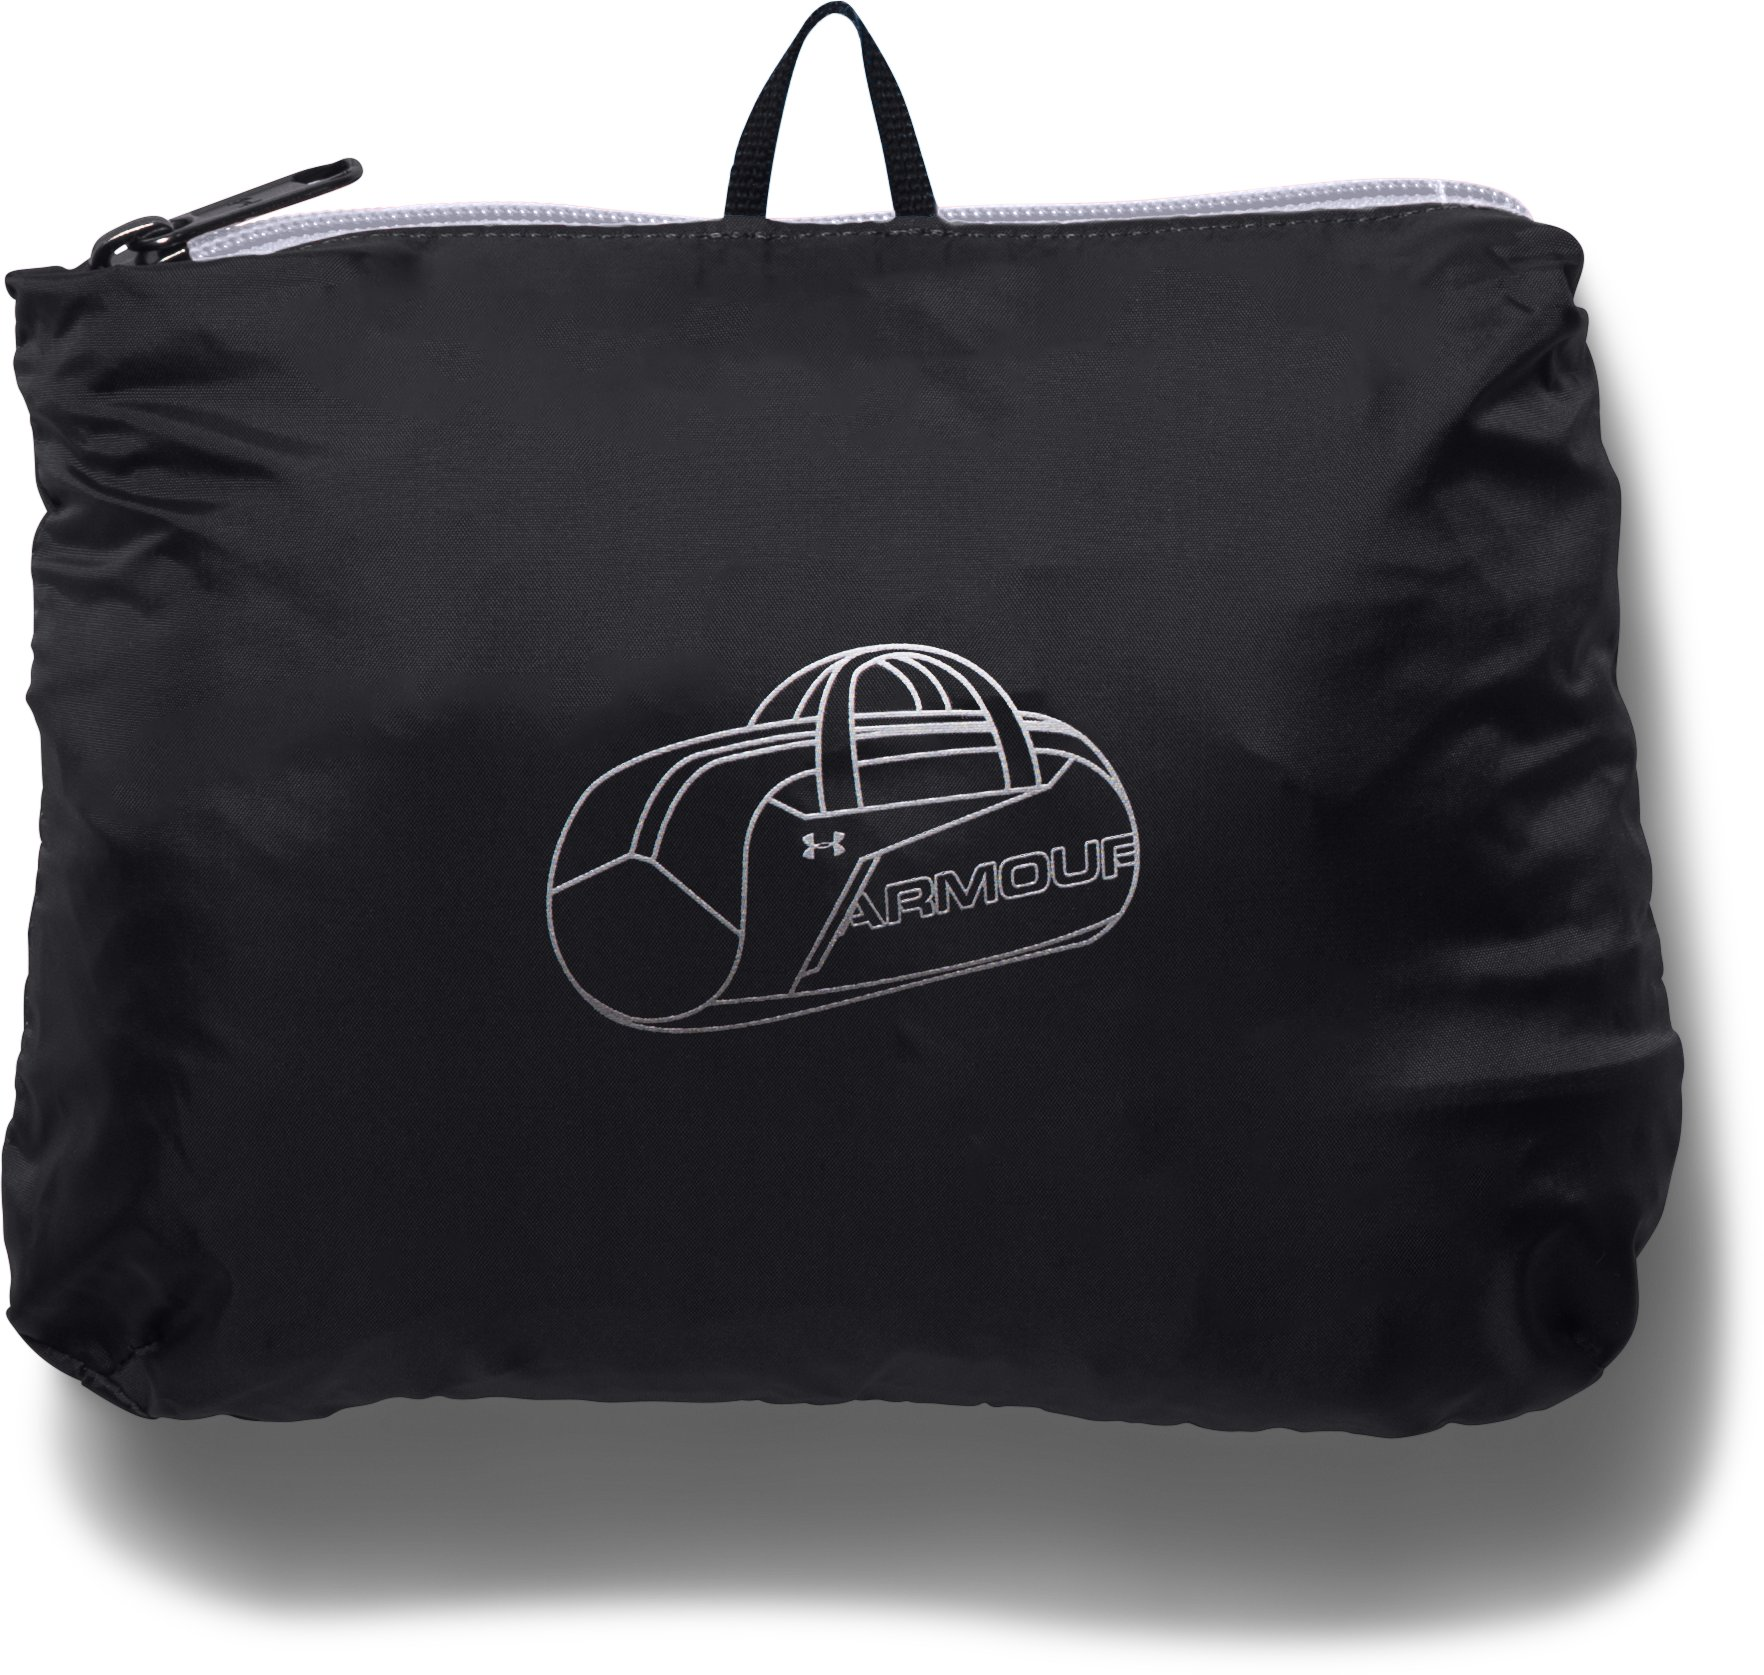 UA Packable Duffle Bag, Black